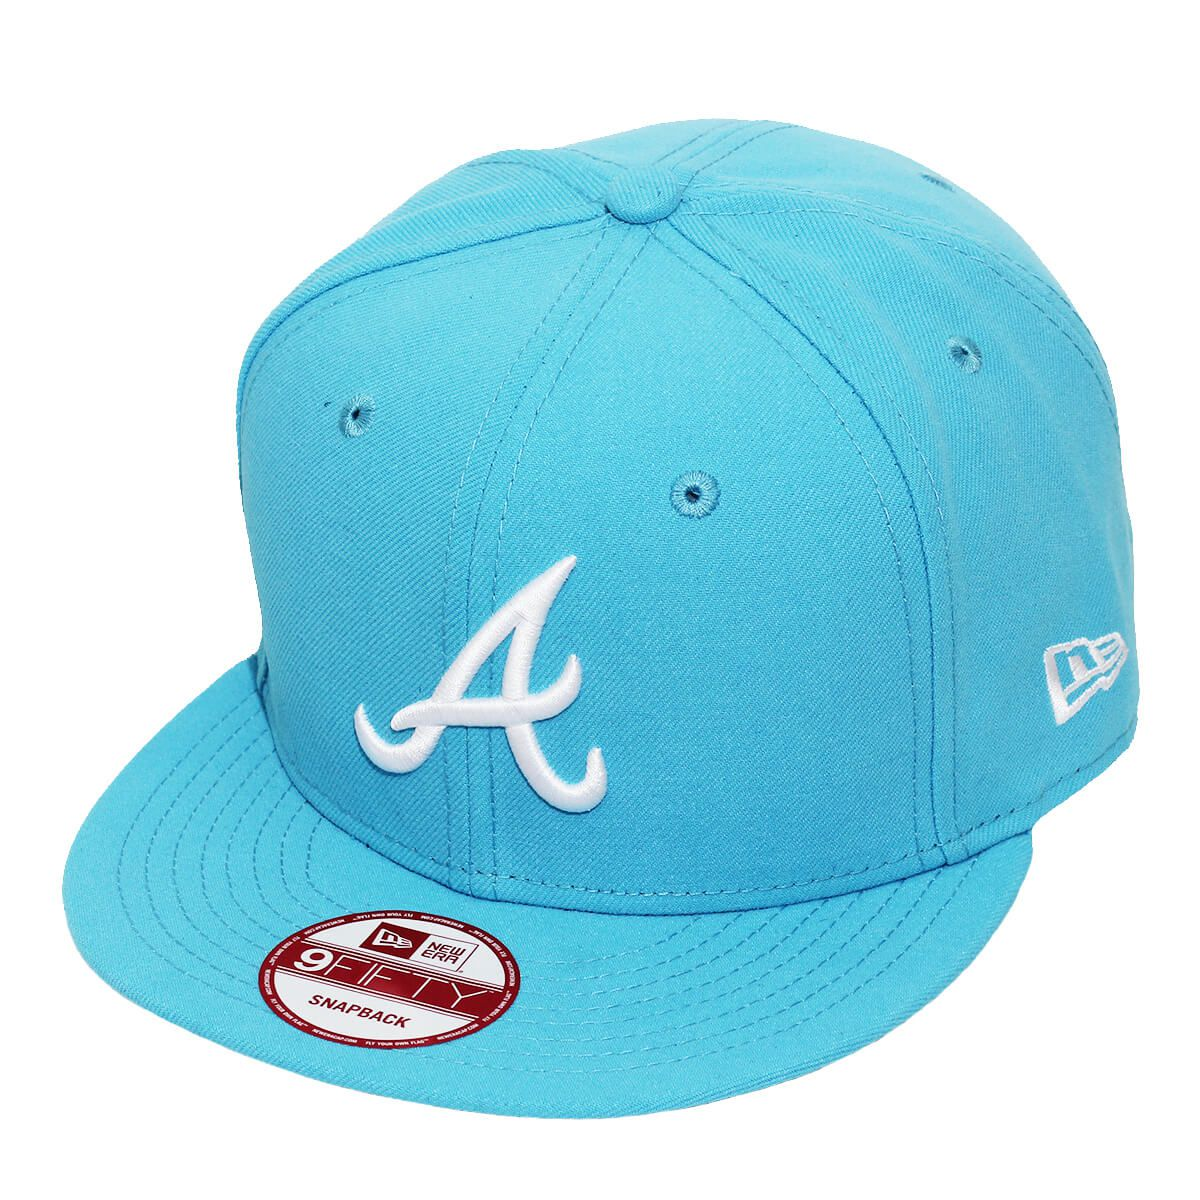 Boné New Era Aba Reta 950 SN MLB Atlanta Basic Colors Azul Claro